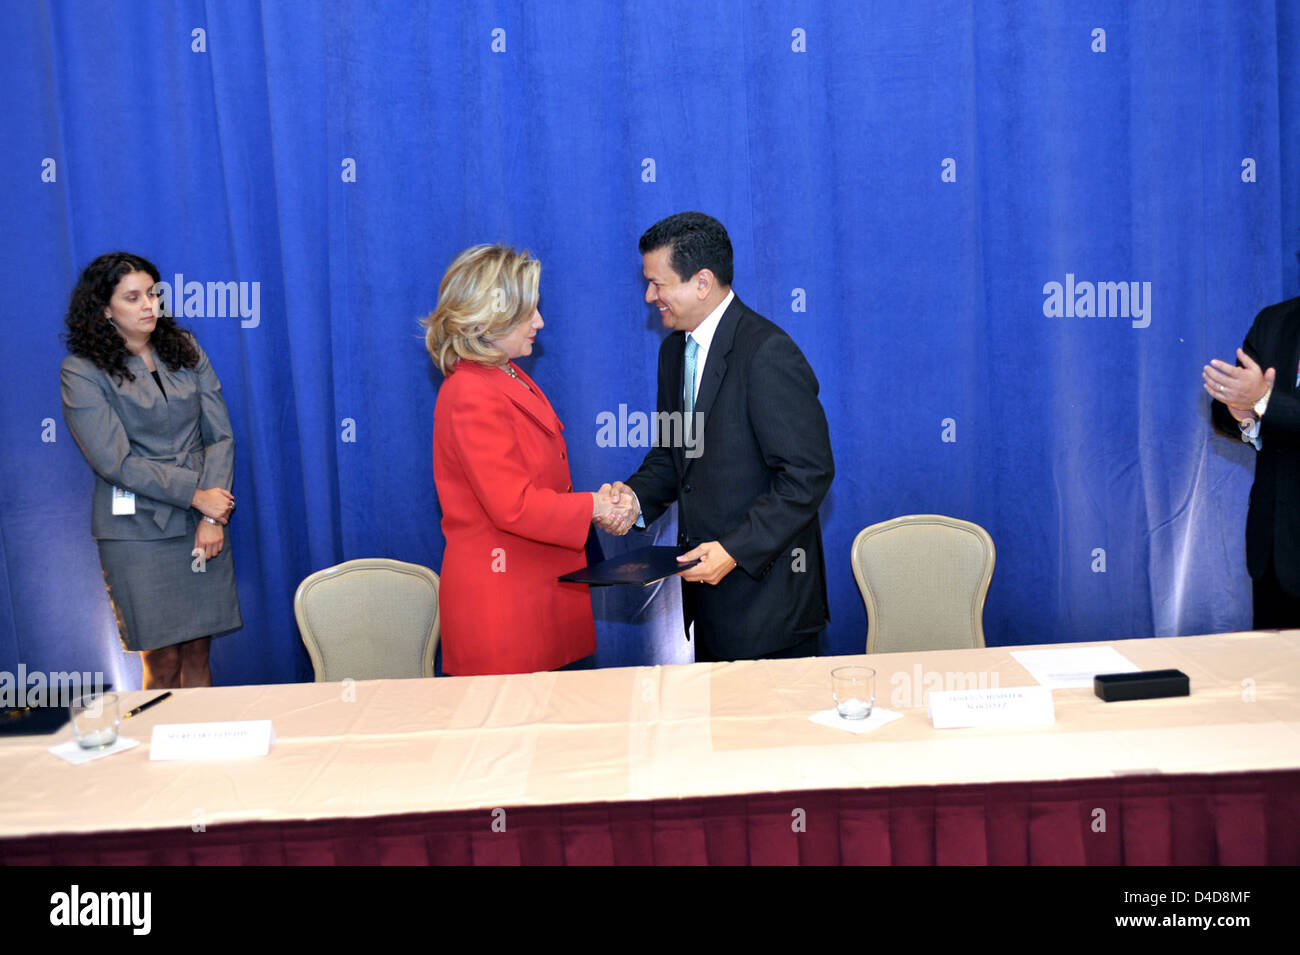 Secretary Clinton Shakes Hands With Salvadoran Prime Minister Martinez - Stock Image